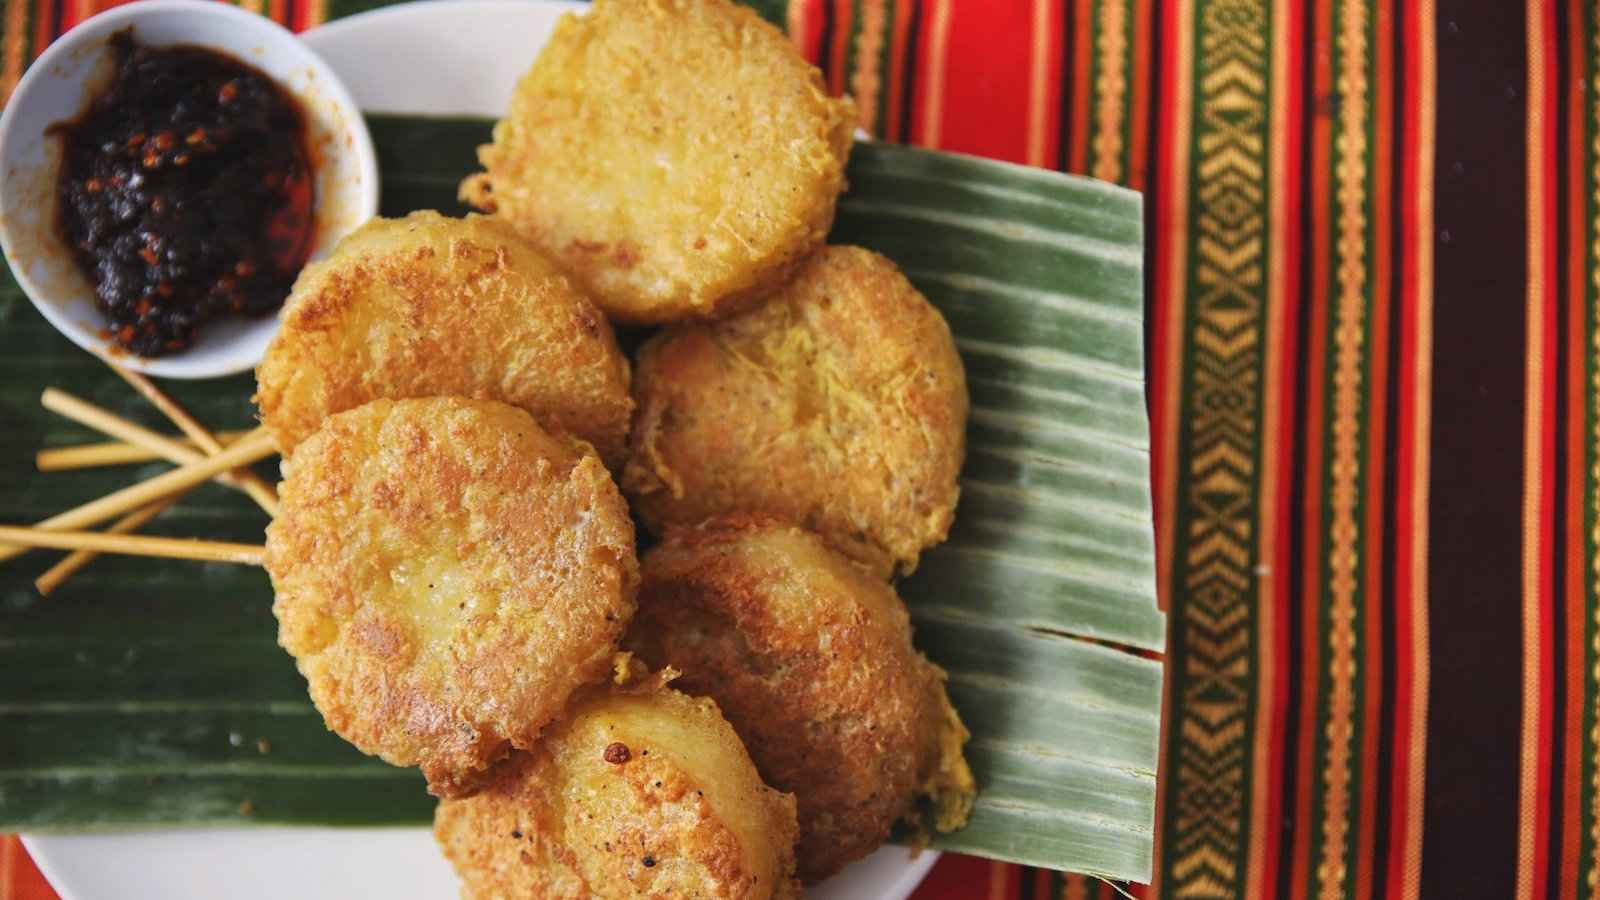 Khao jee are sticky rice patties cooked on skewers and a street food from Laos you should try!